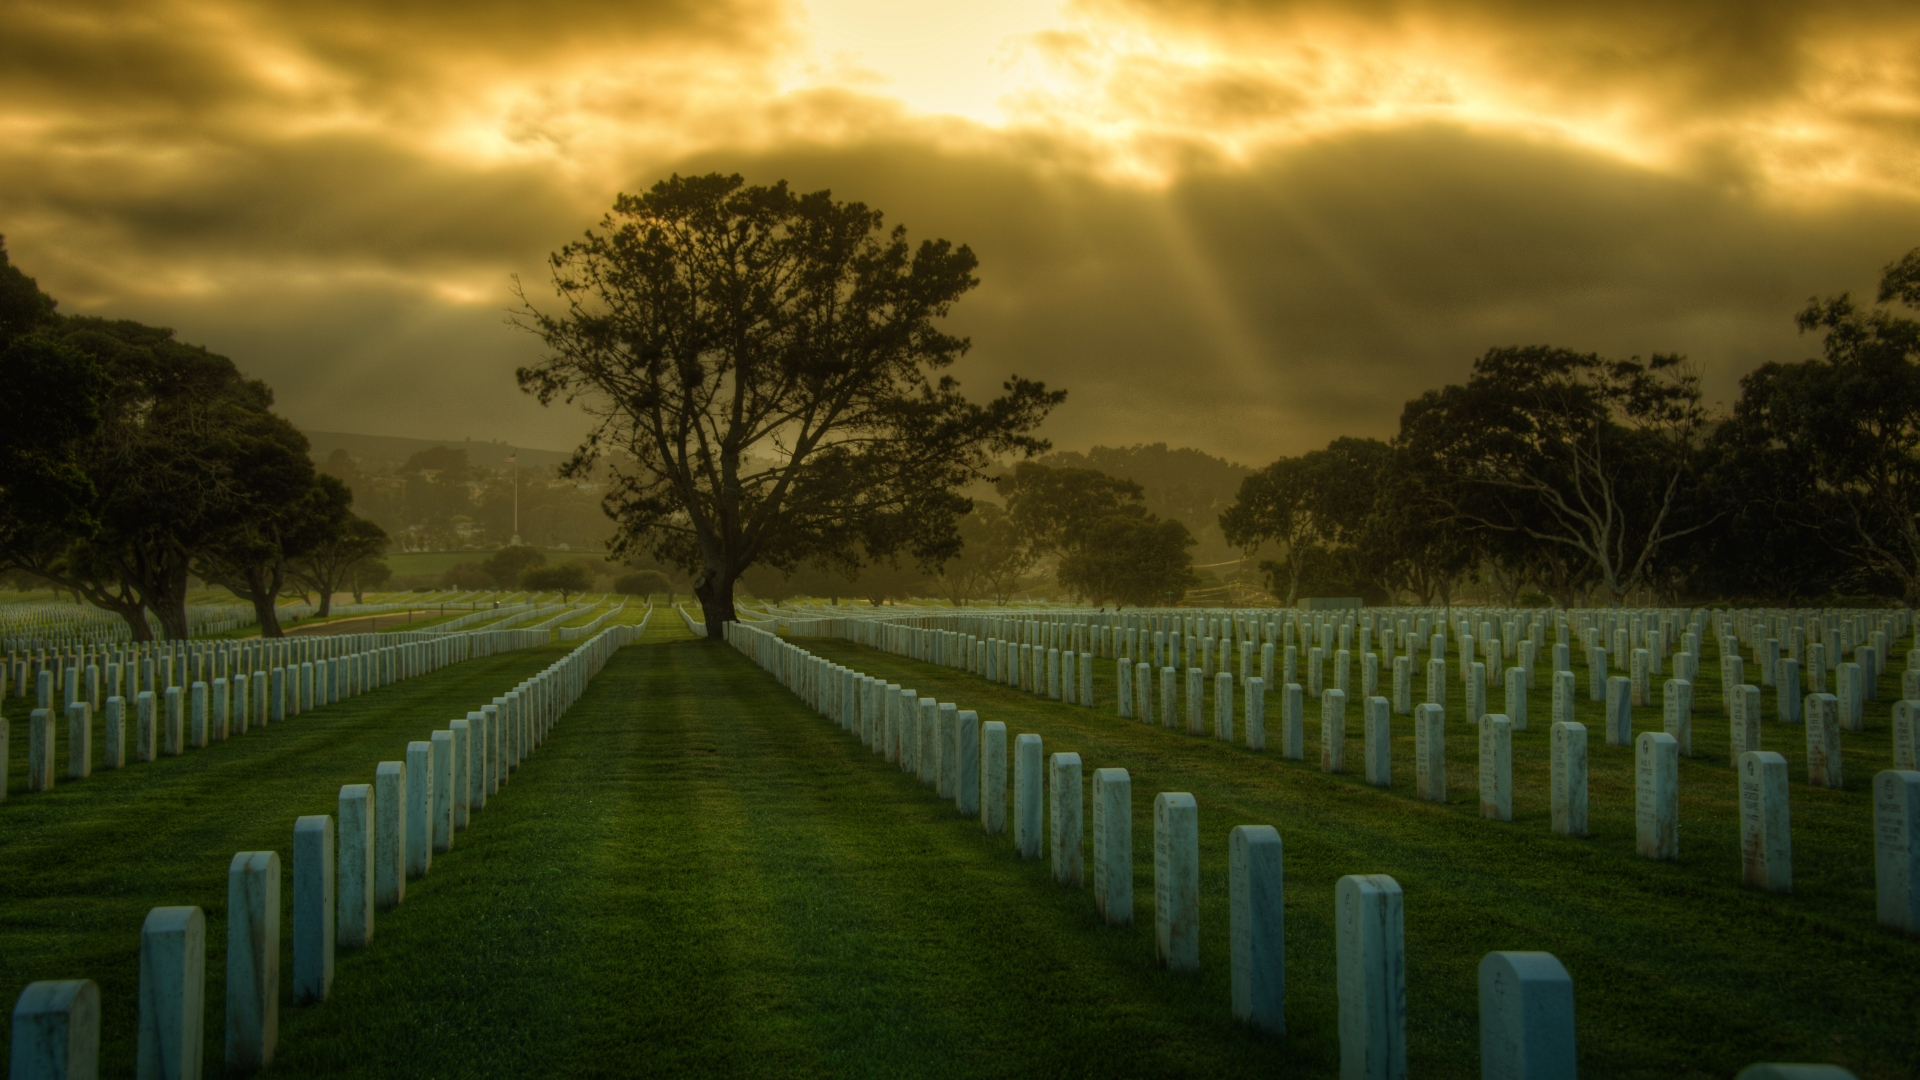 Hd Backgroumds: Cemetery Wallpapers, Pictures, Images